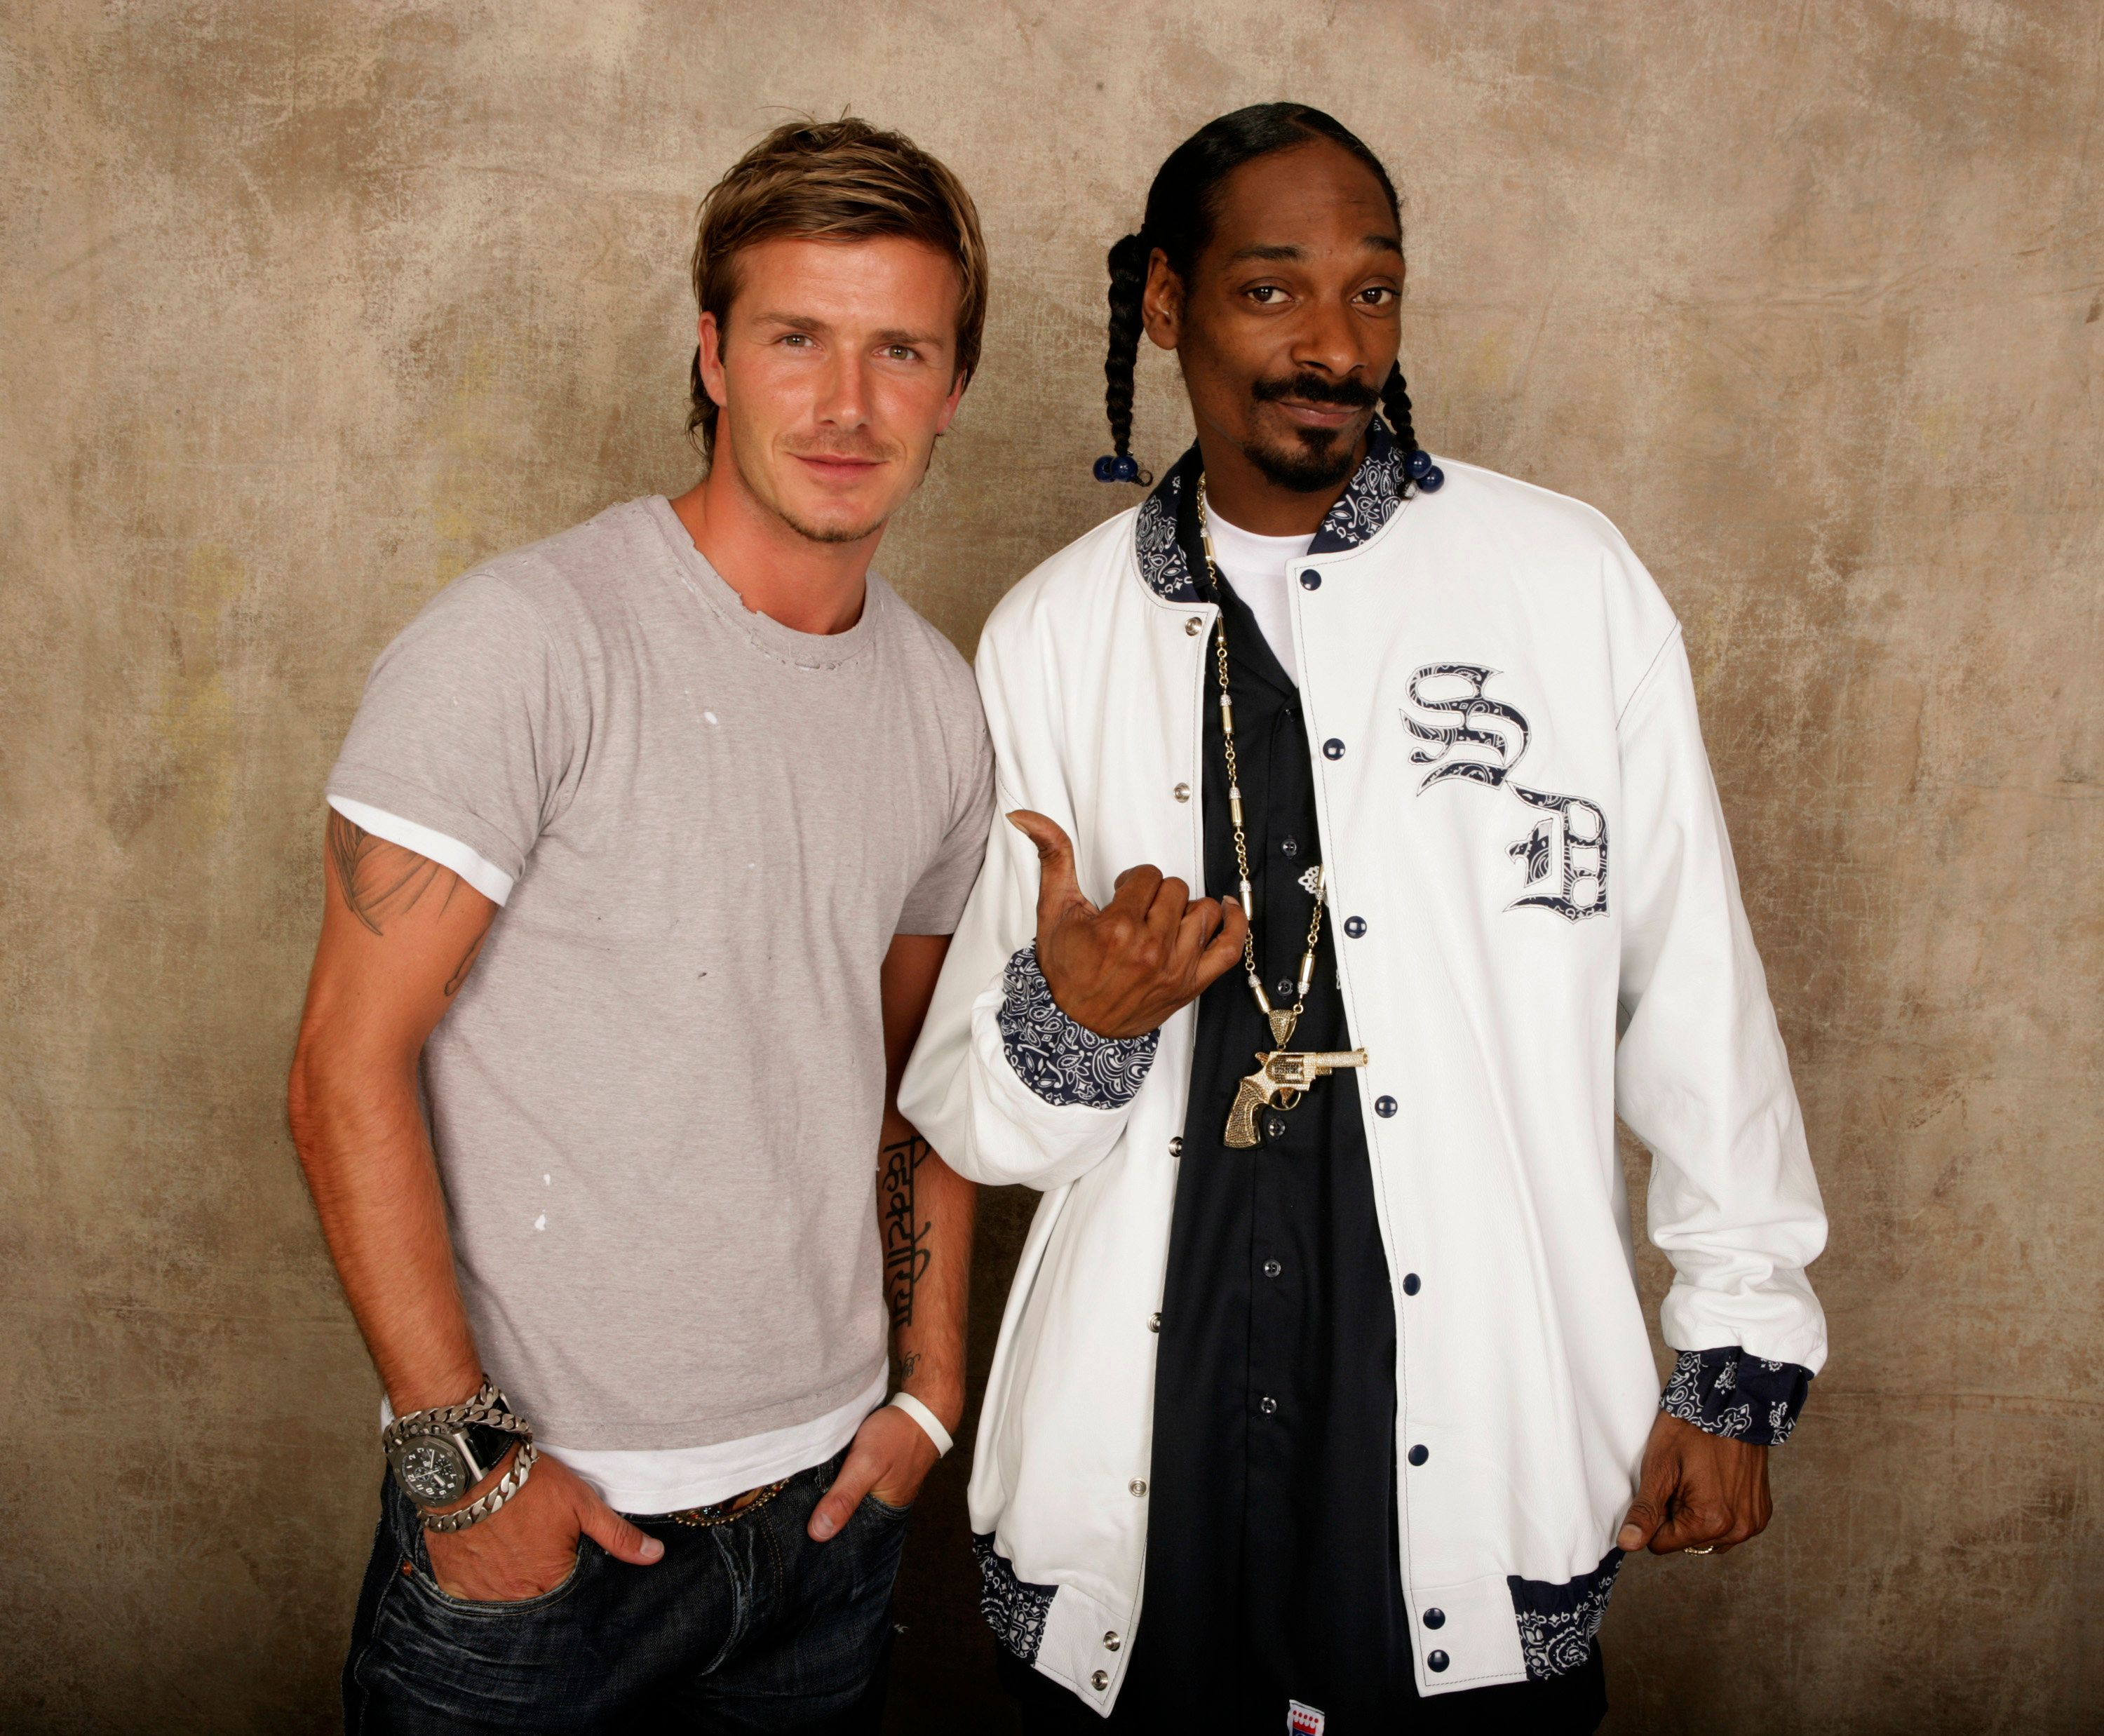 David Beckham and Snoop Dogg met while filming the rapper's reality show in 2007.